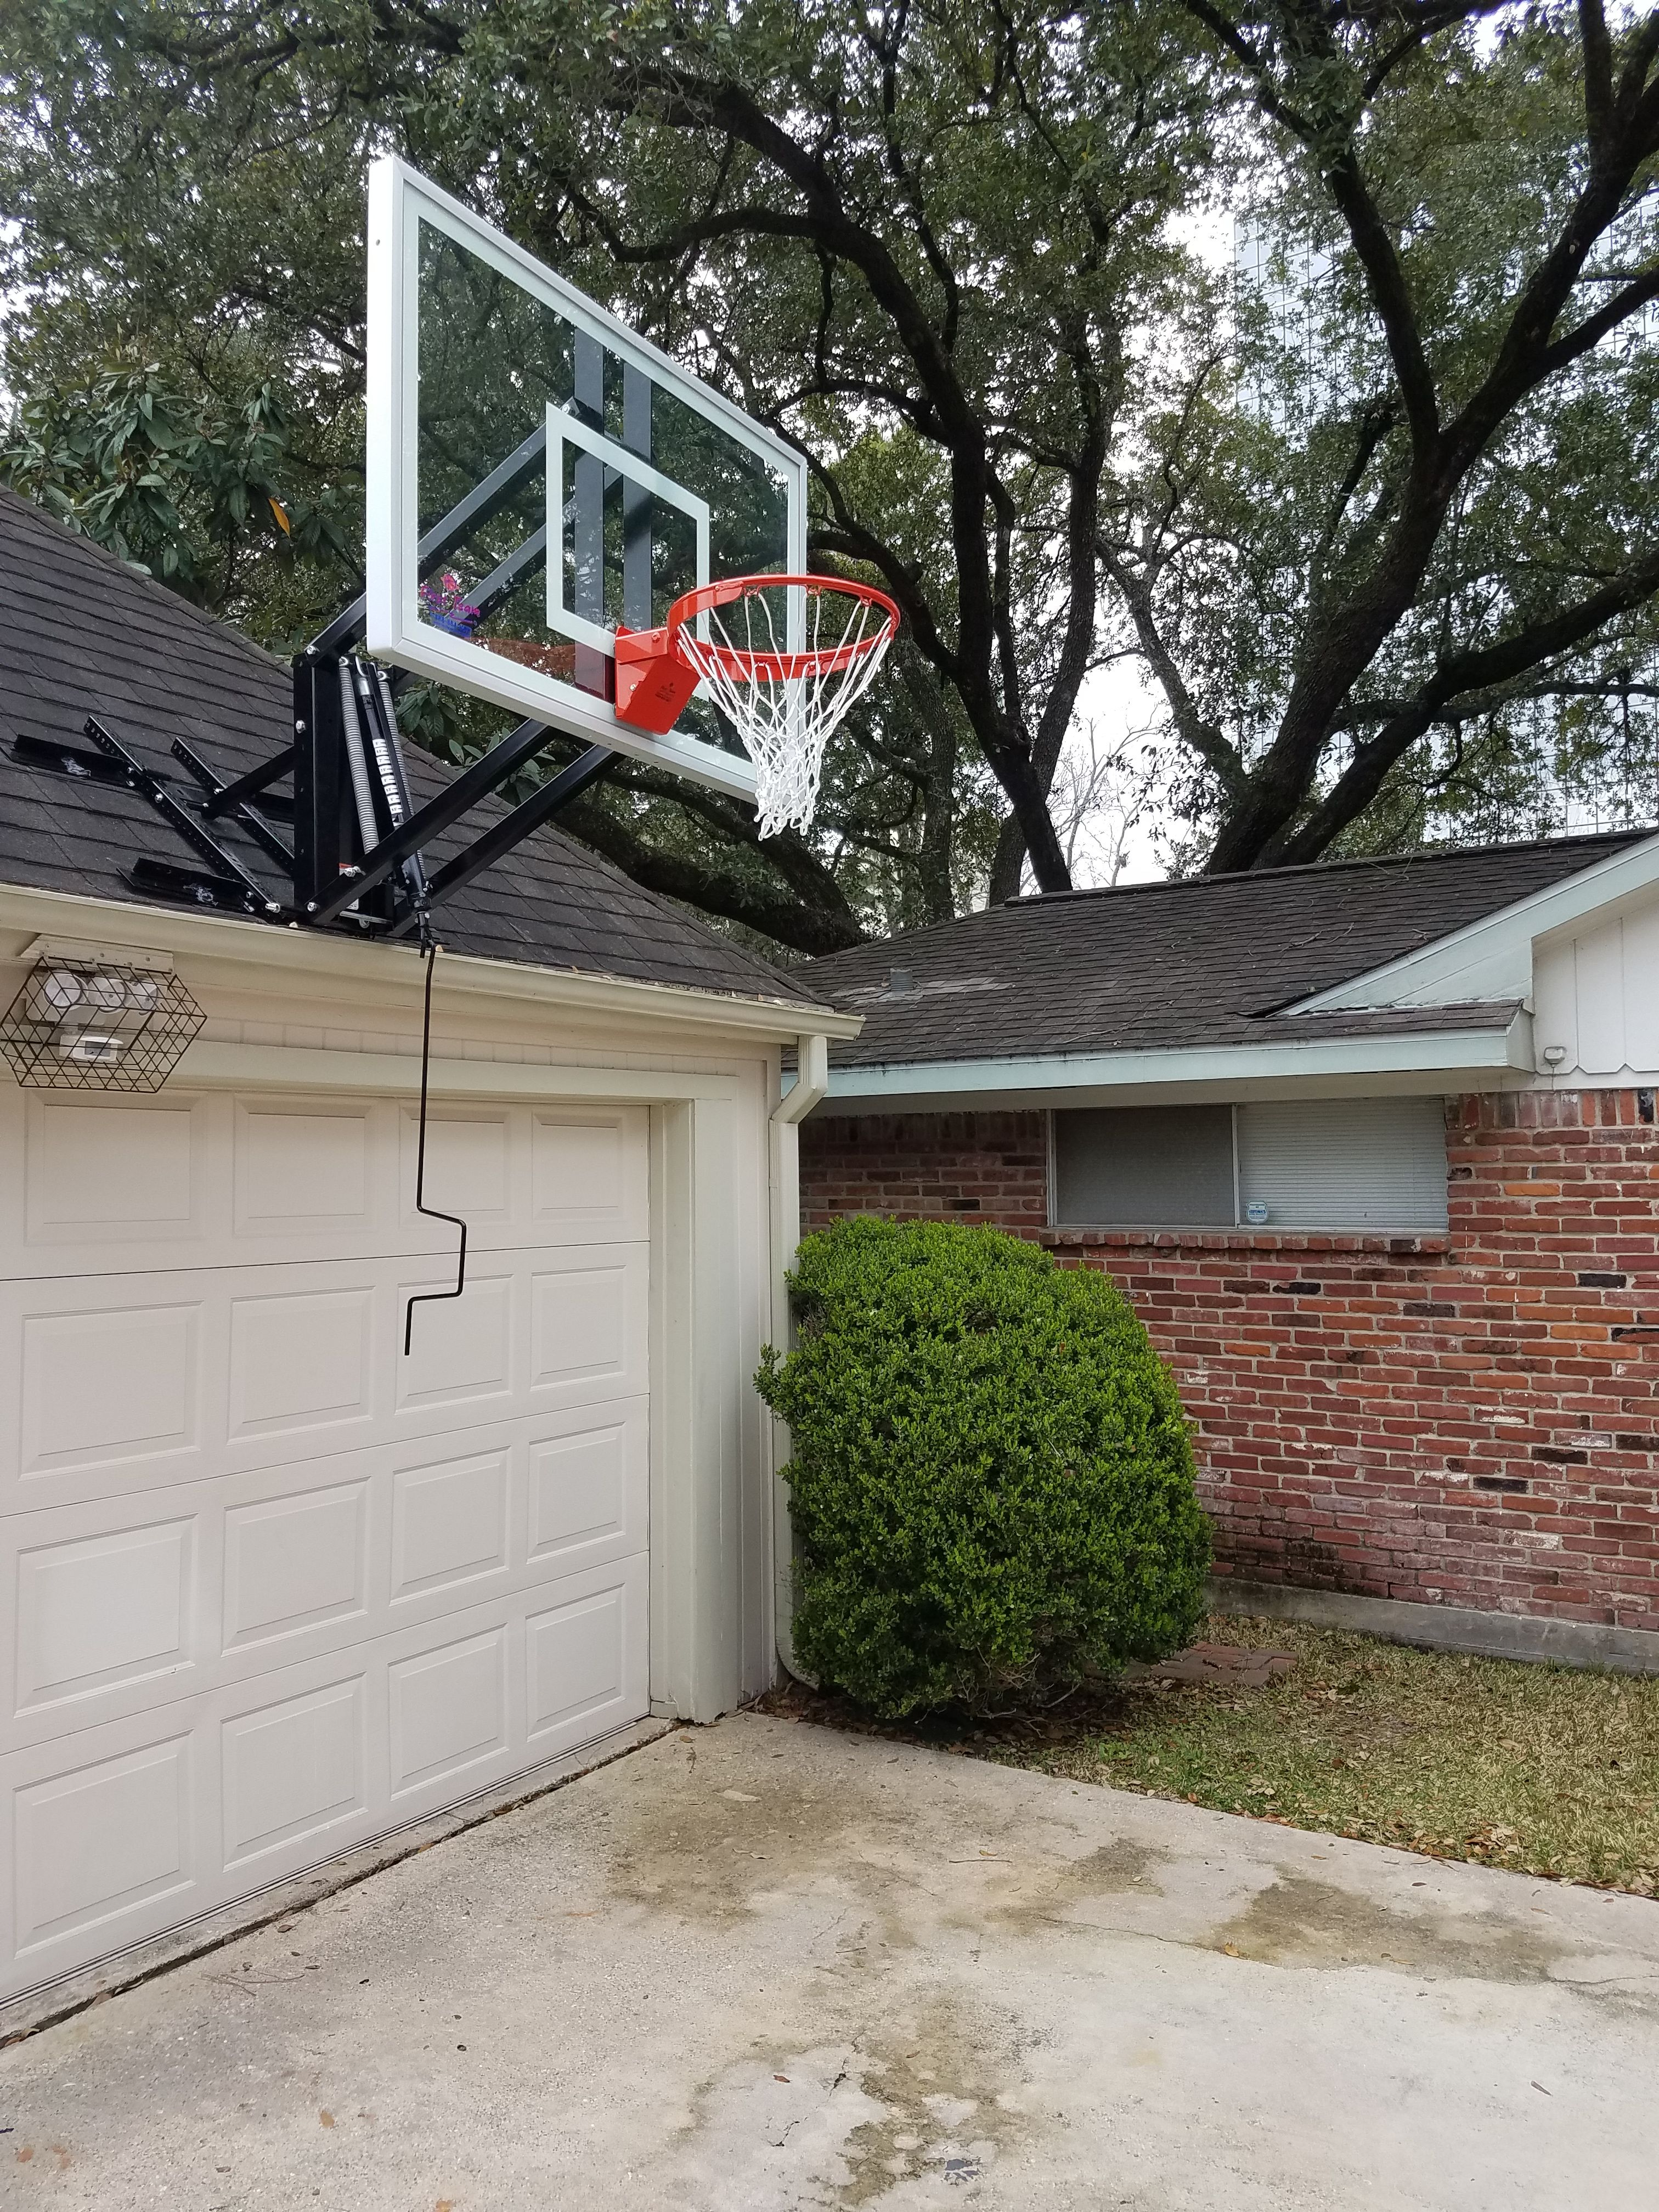 pin by dunrite playgrounds on roofmaster roof mount basketball